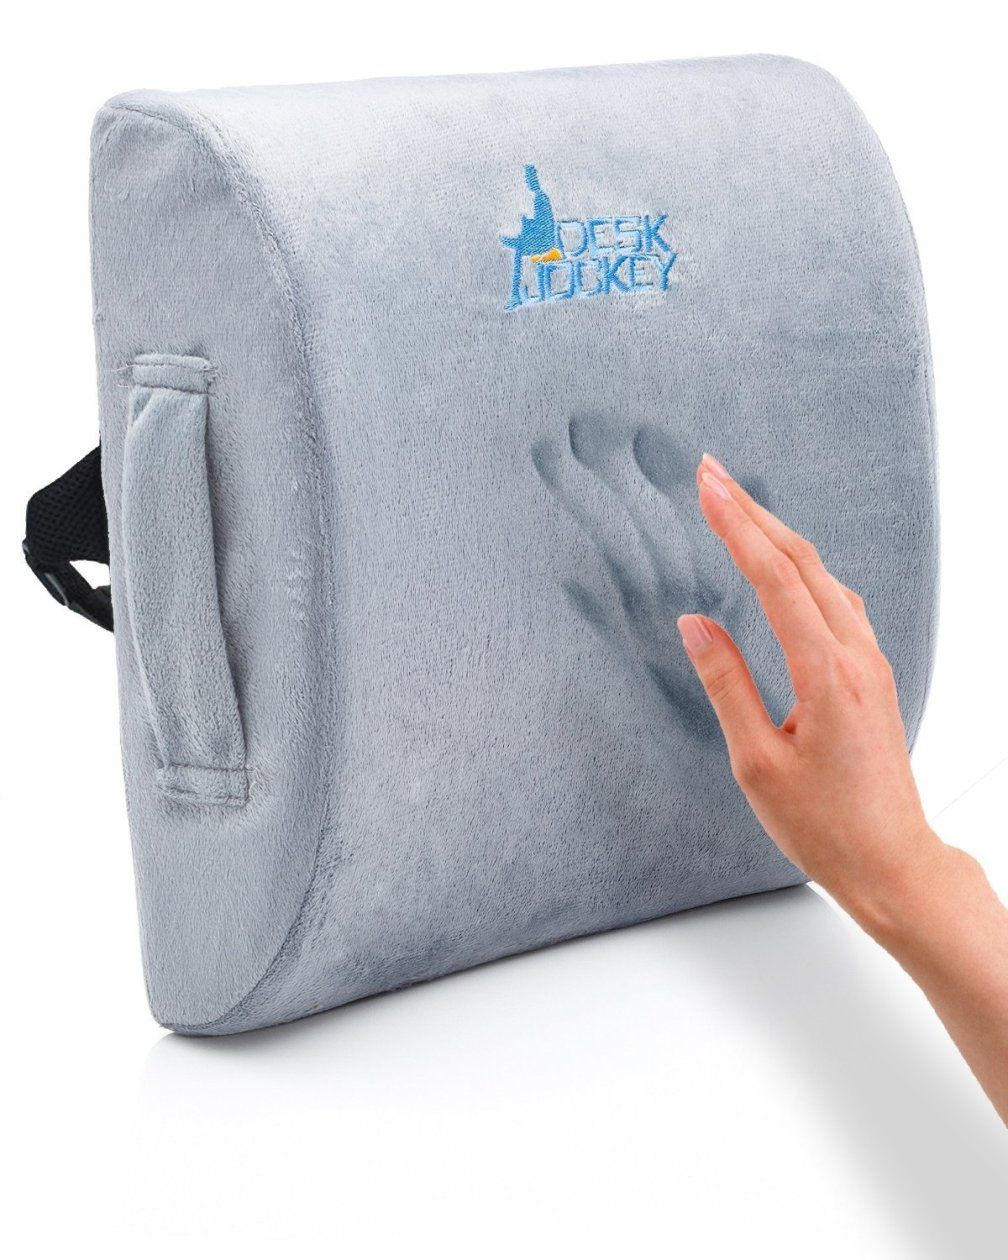 Lumbar Support Pillow For Chair Back Support Pillows Back Support Pillows Back Support Pillow